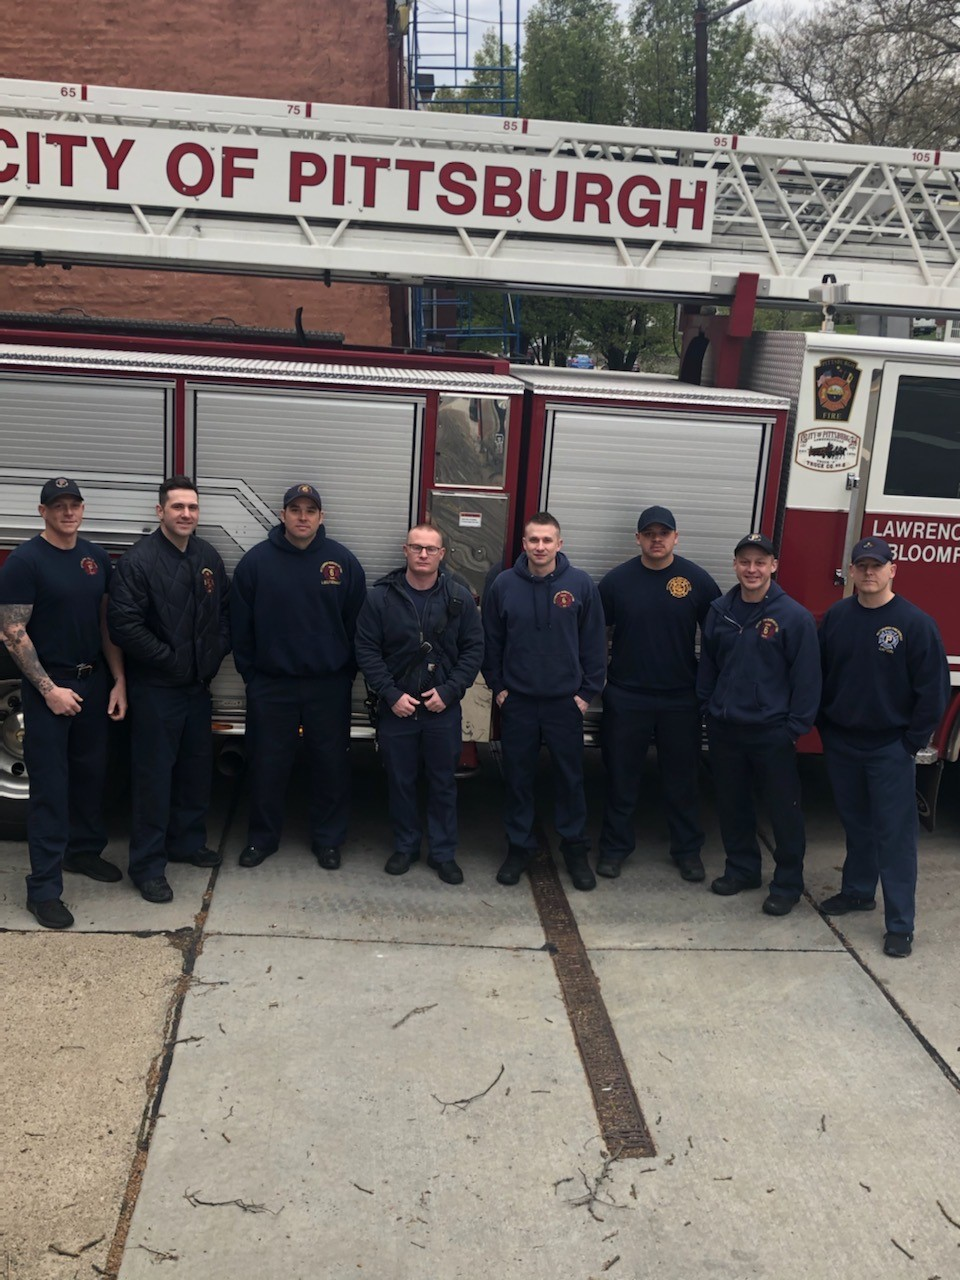 Firefighters - City of Pittsburgh